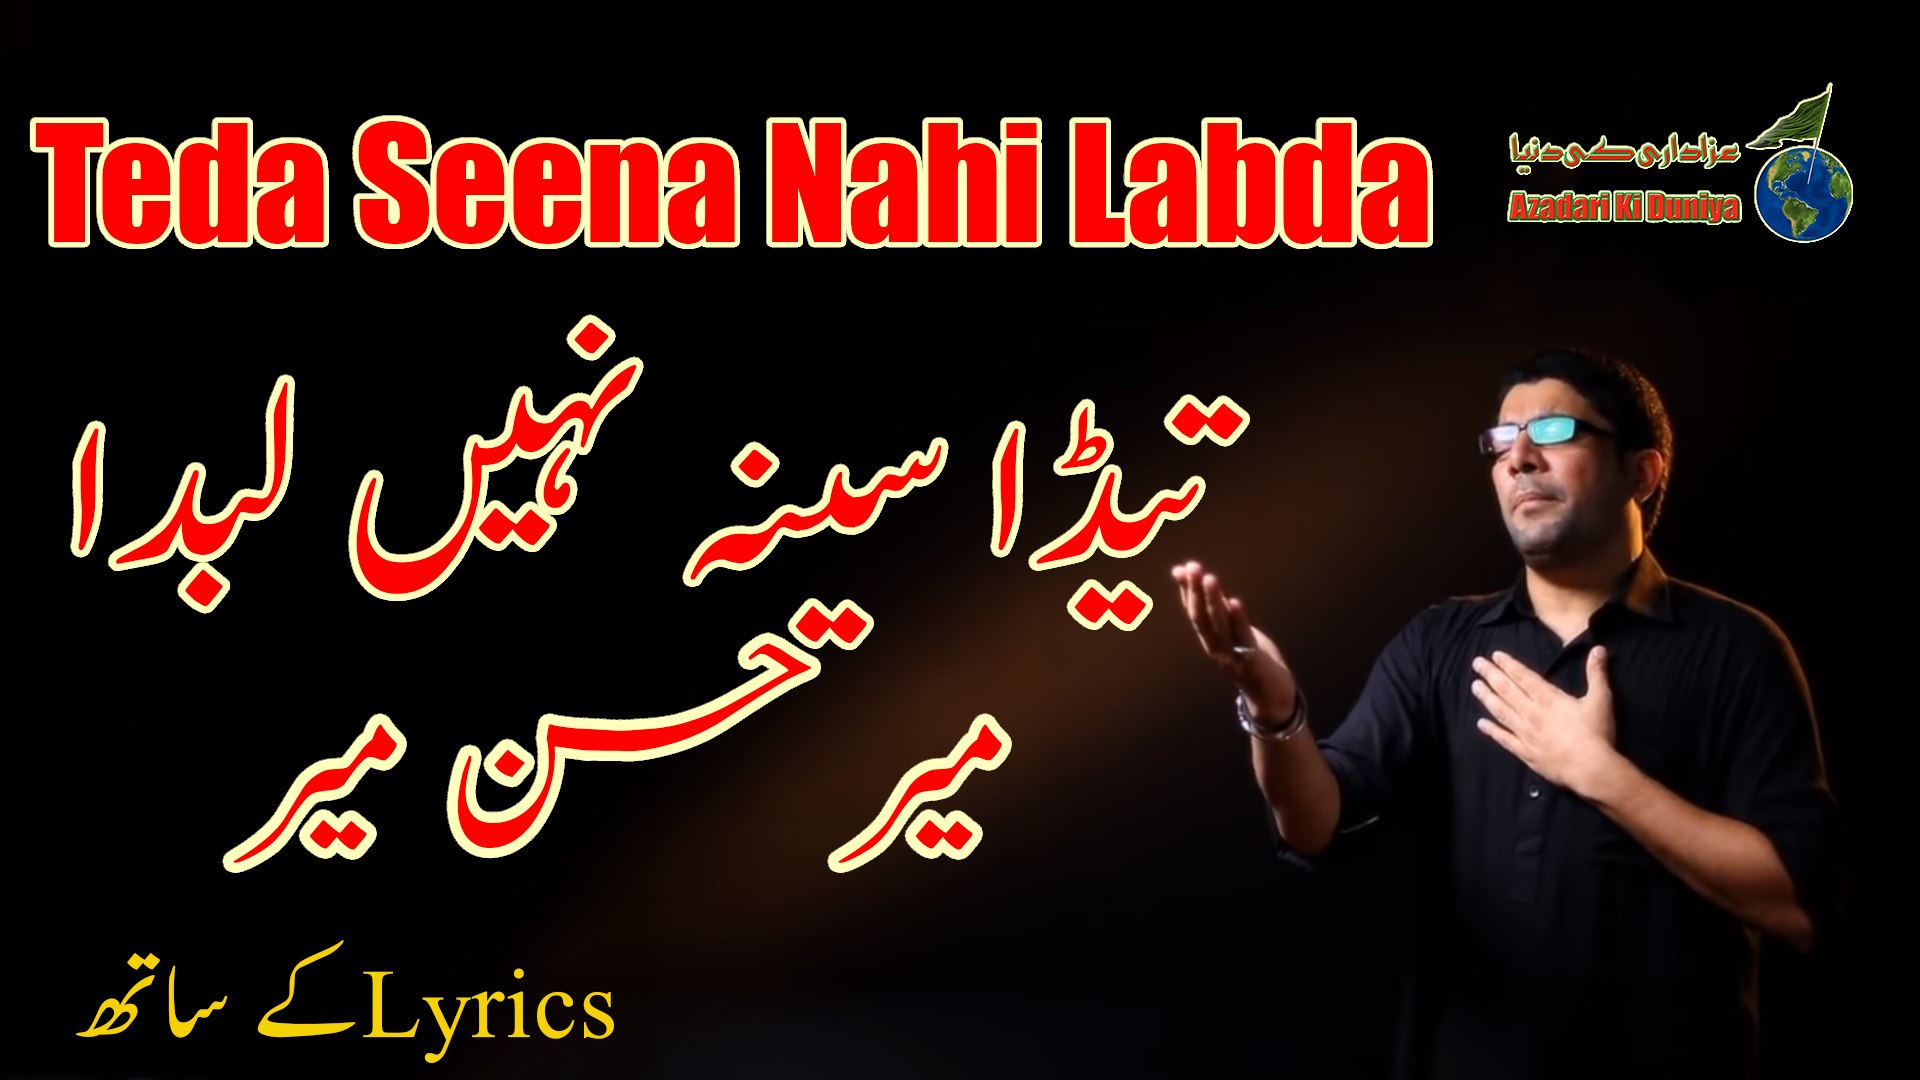 Tenda Seena Nahi Labda With Lyrics - Mir Hasan Mir Noha 2014-2015